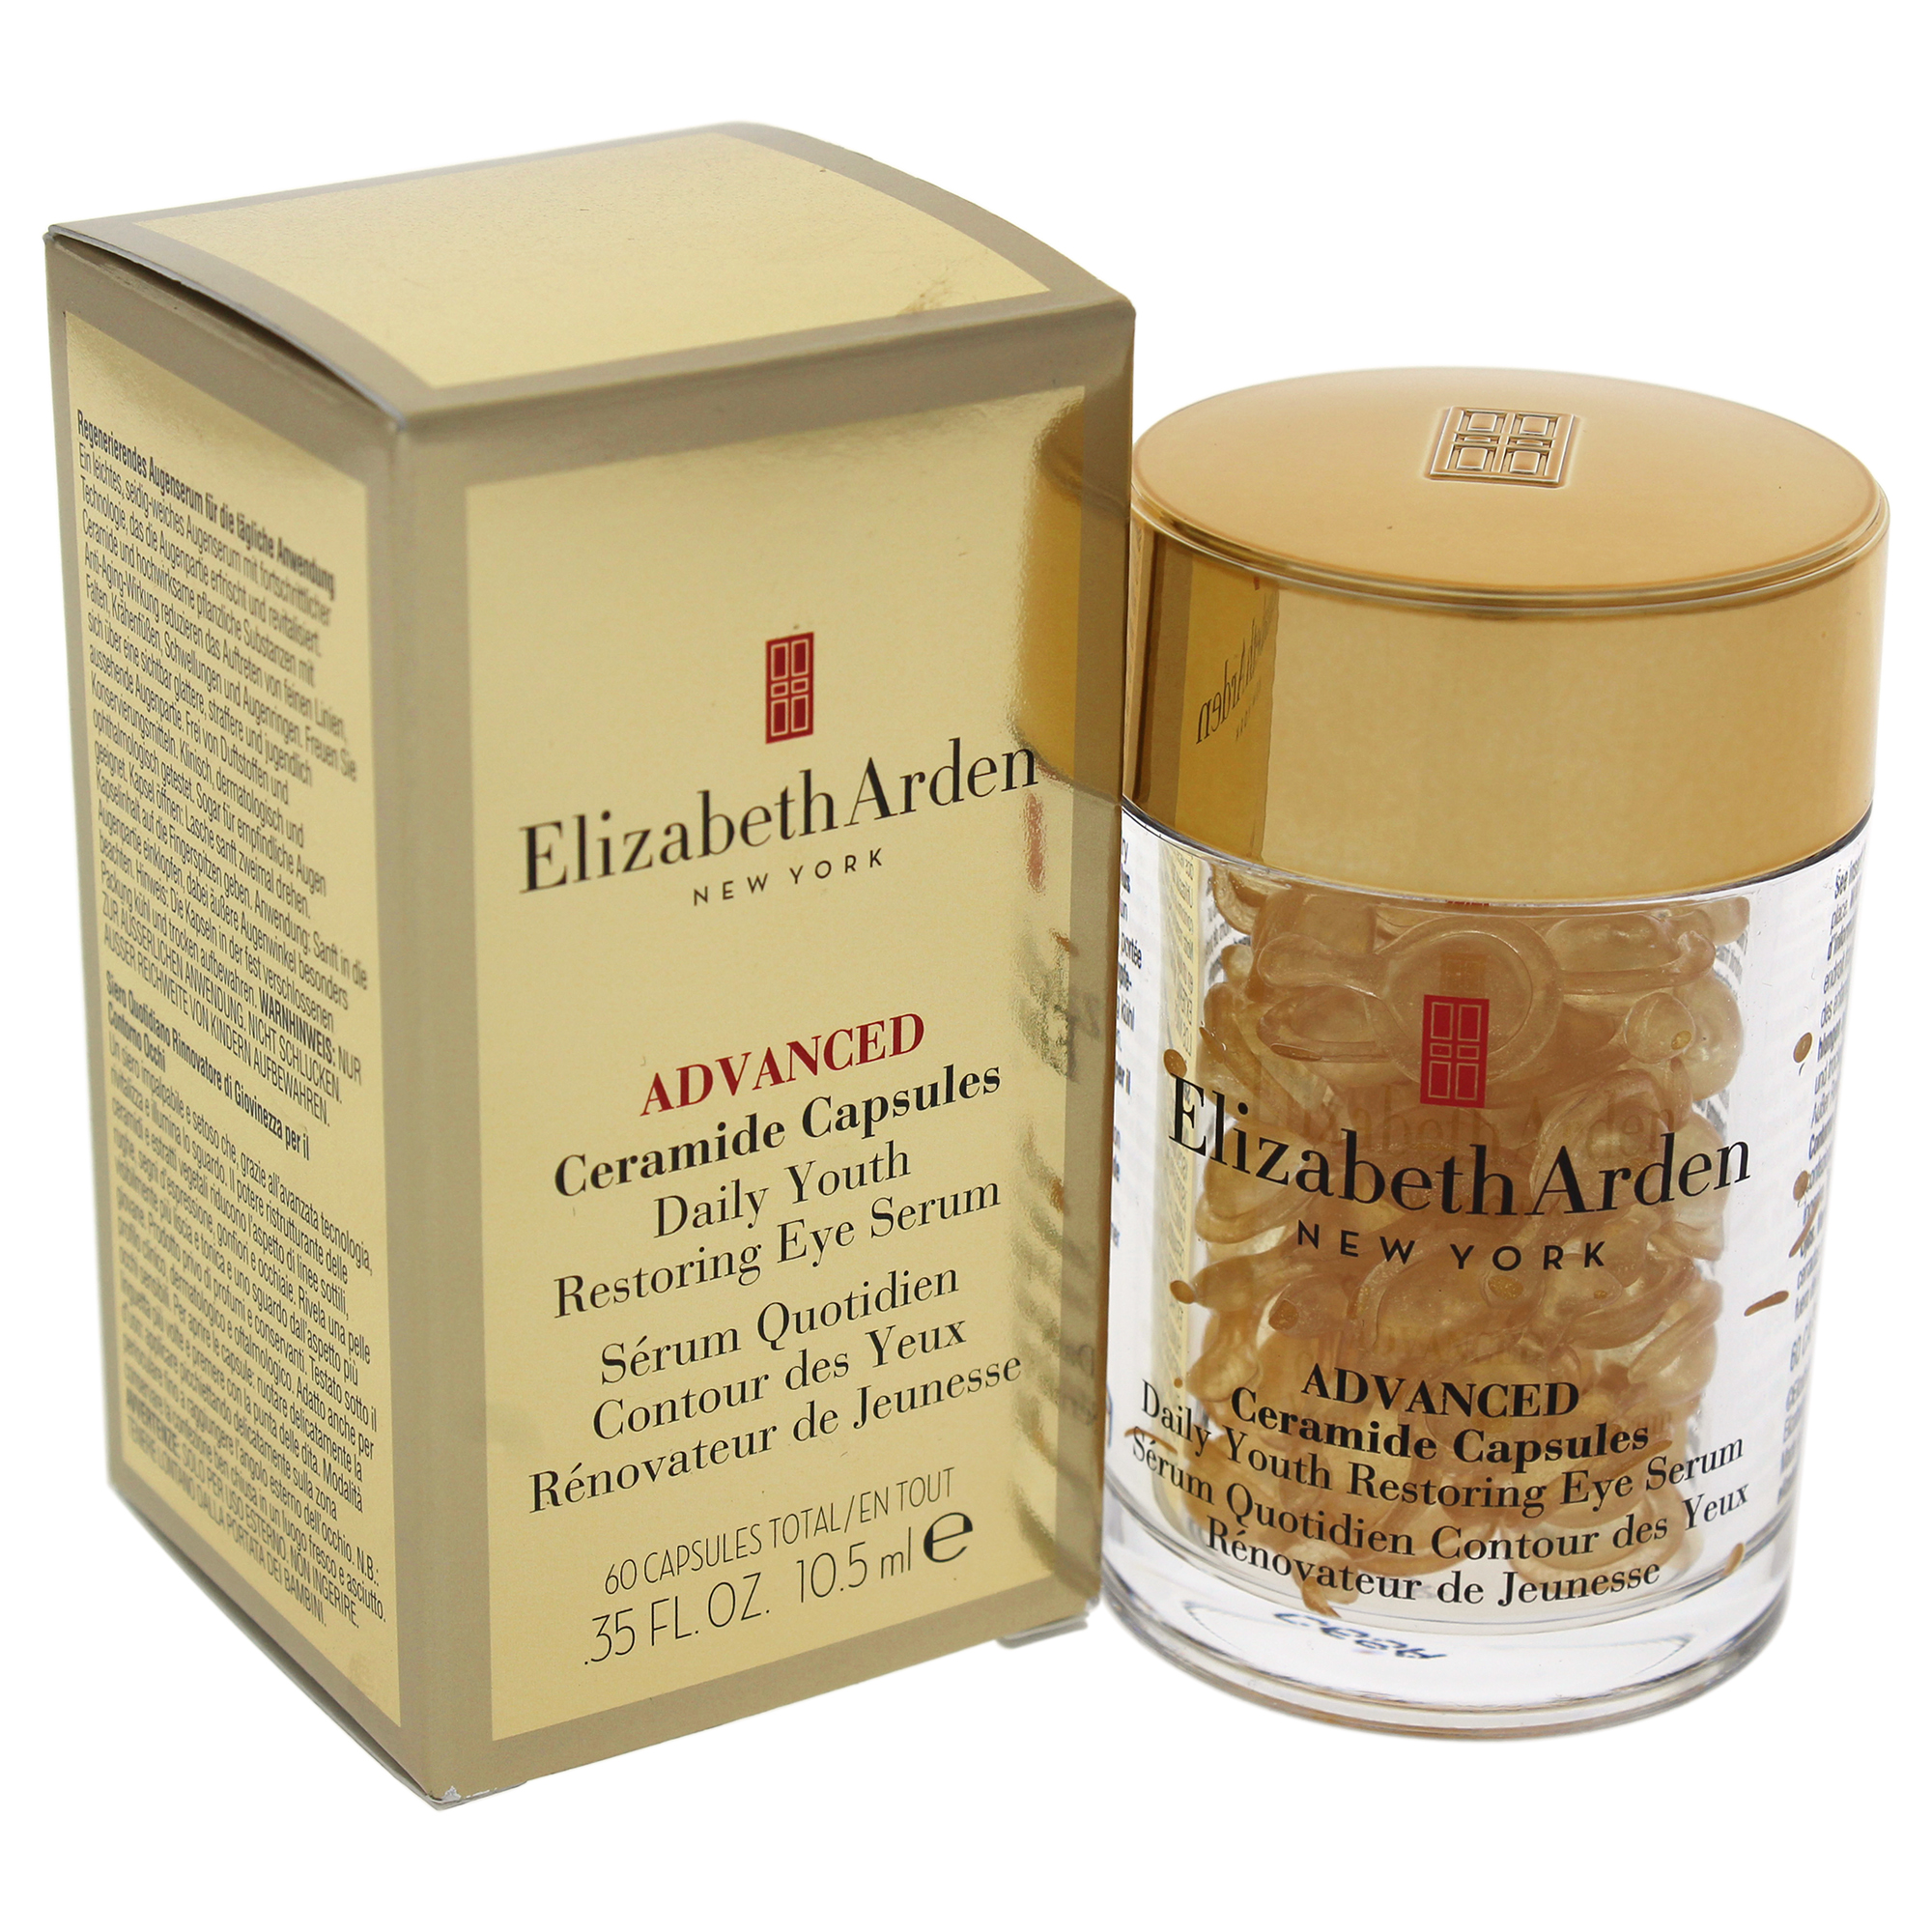 4 Pack - Elizabeth Arden Ceramide Daily Youth Restoring Eye Serum Capsules 60 ea Anself Silicone Rechargeable Electric Face Brush Mini Ultrasonic Beauty Instrument Super Facial Cleaner Skin Tool